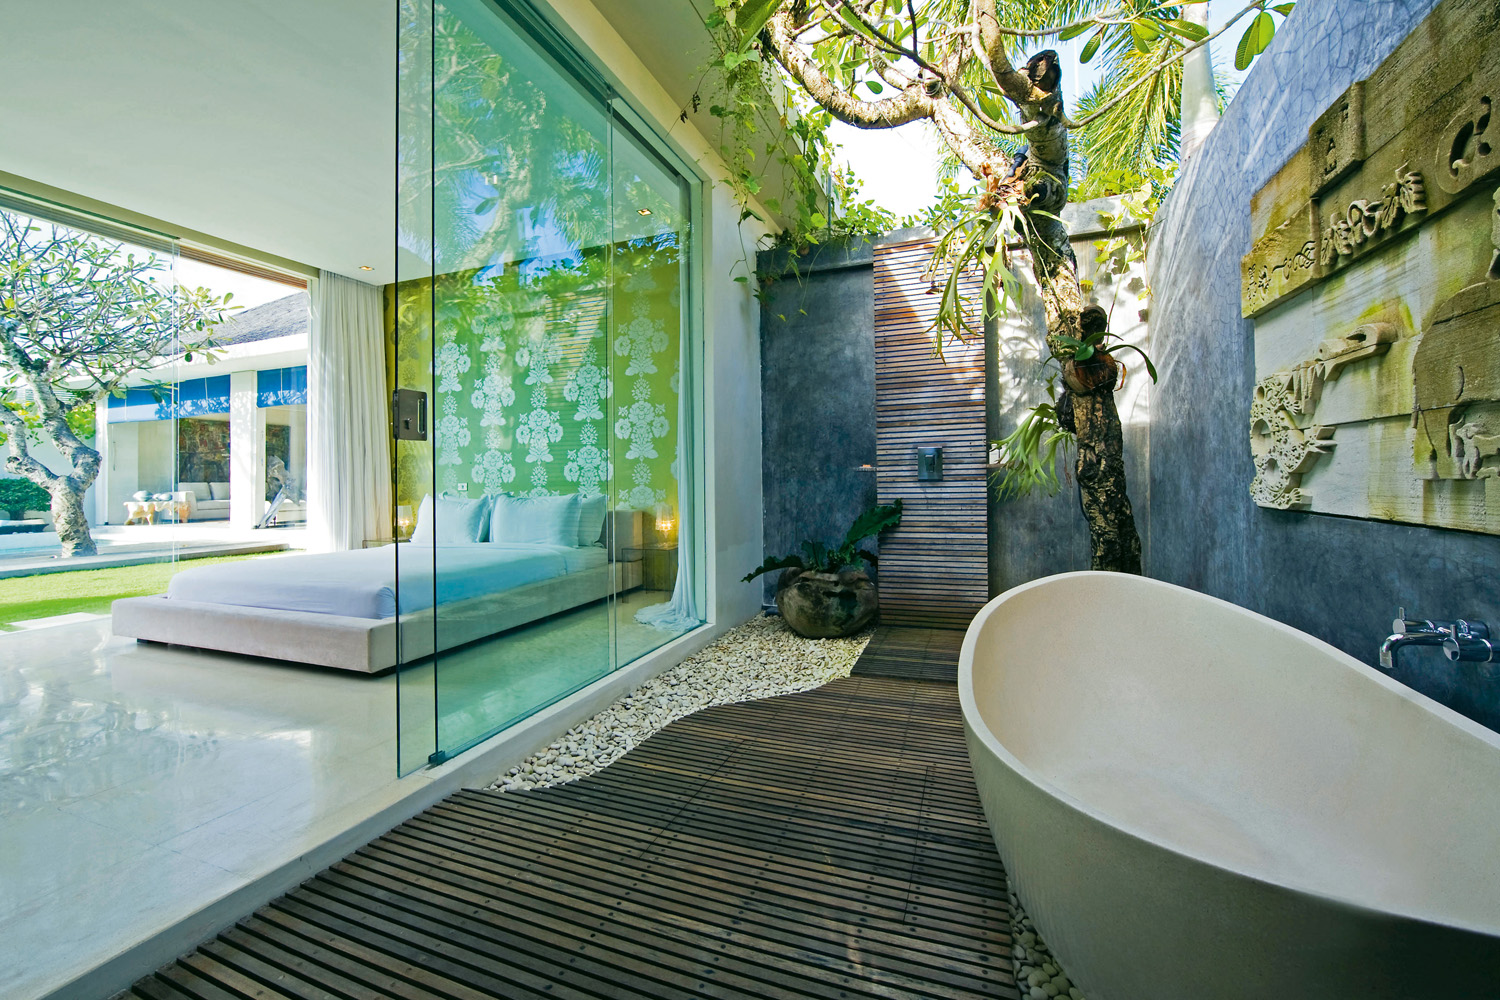 Organic outdoor shower with beautiful wooden flooring